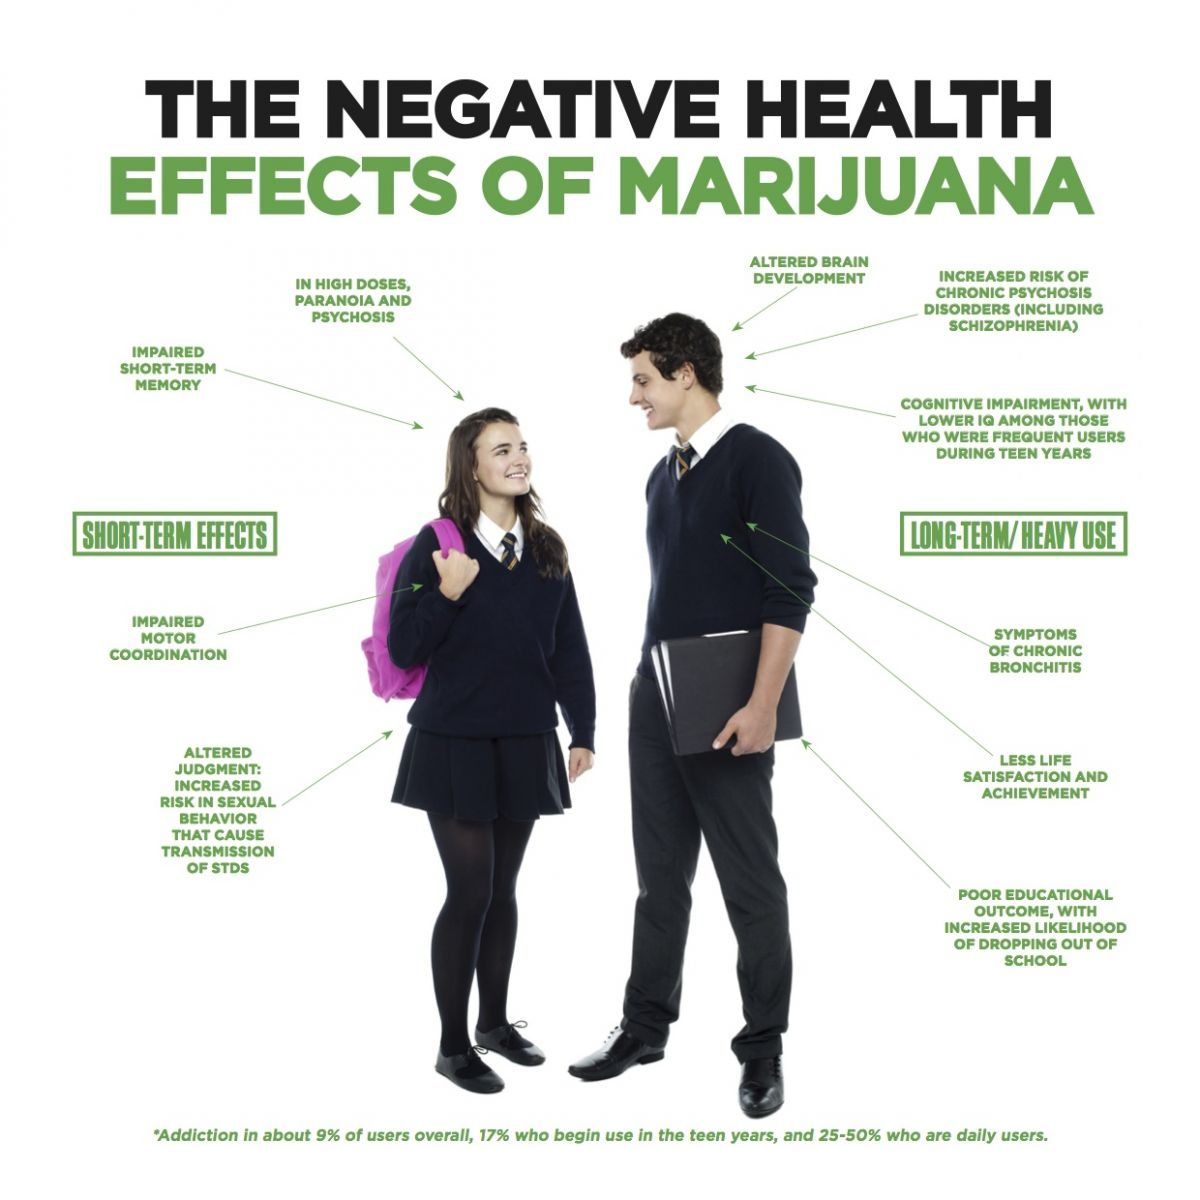 harmful effects of marijuana essay 91 121 113 106 harmful effects of marijuana essay